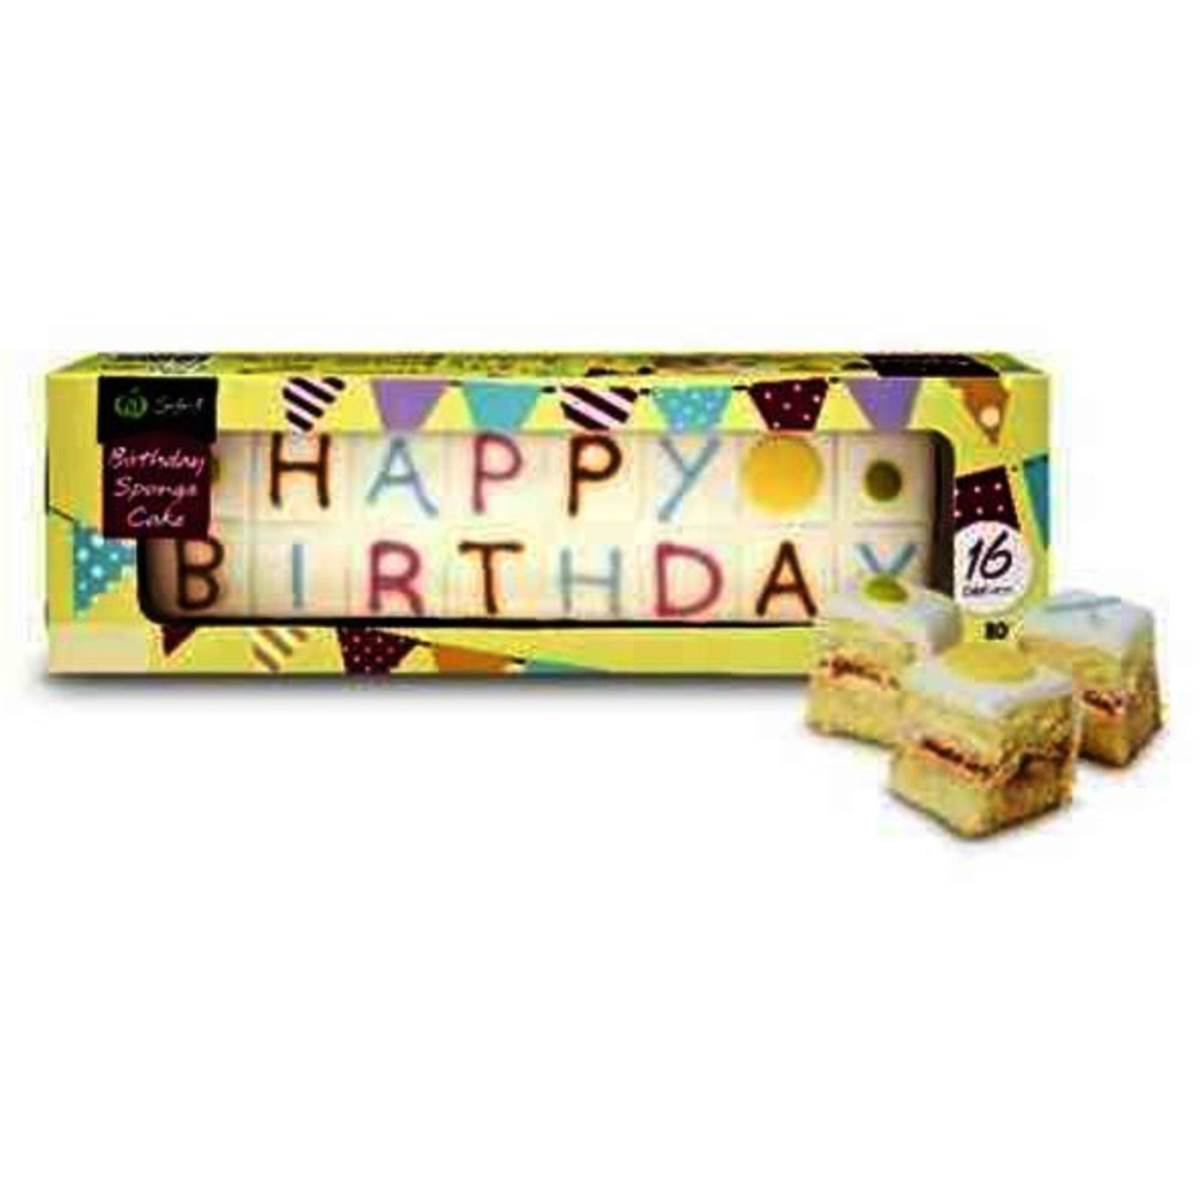 Woolworths Birthday Cakes Best Birthday Cake 2018